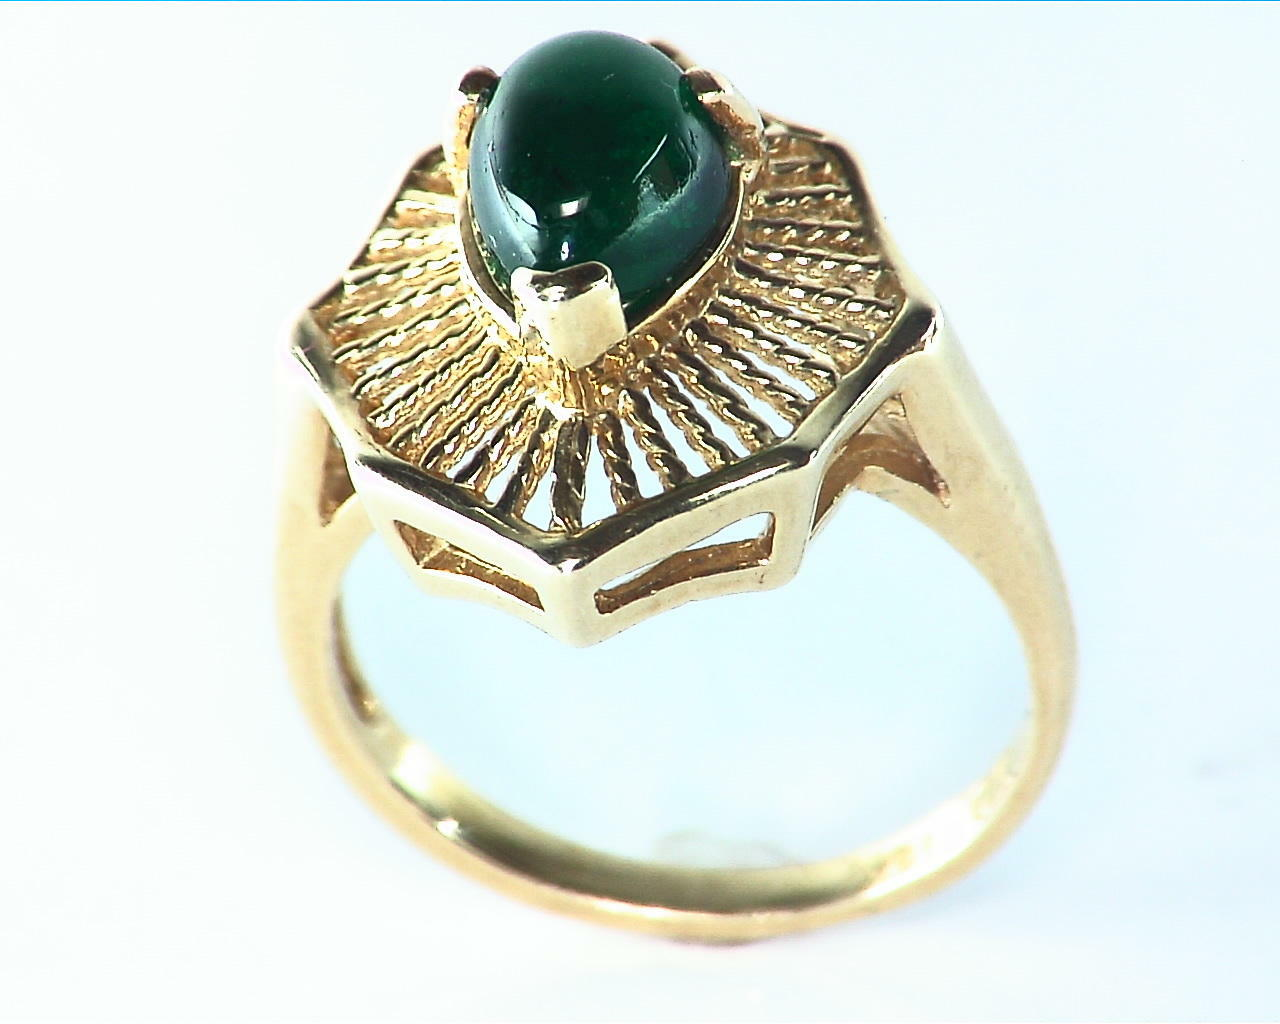 Emerald Engagement Ring in 14 kt Yellow Gold in a Beautiful Design RFK126 4